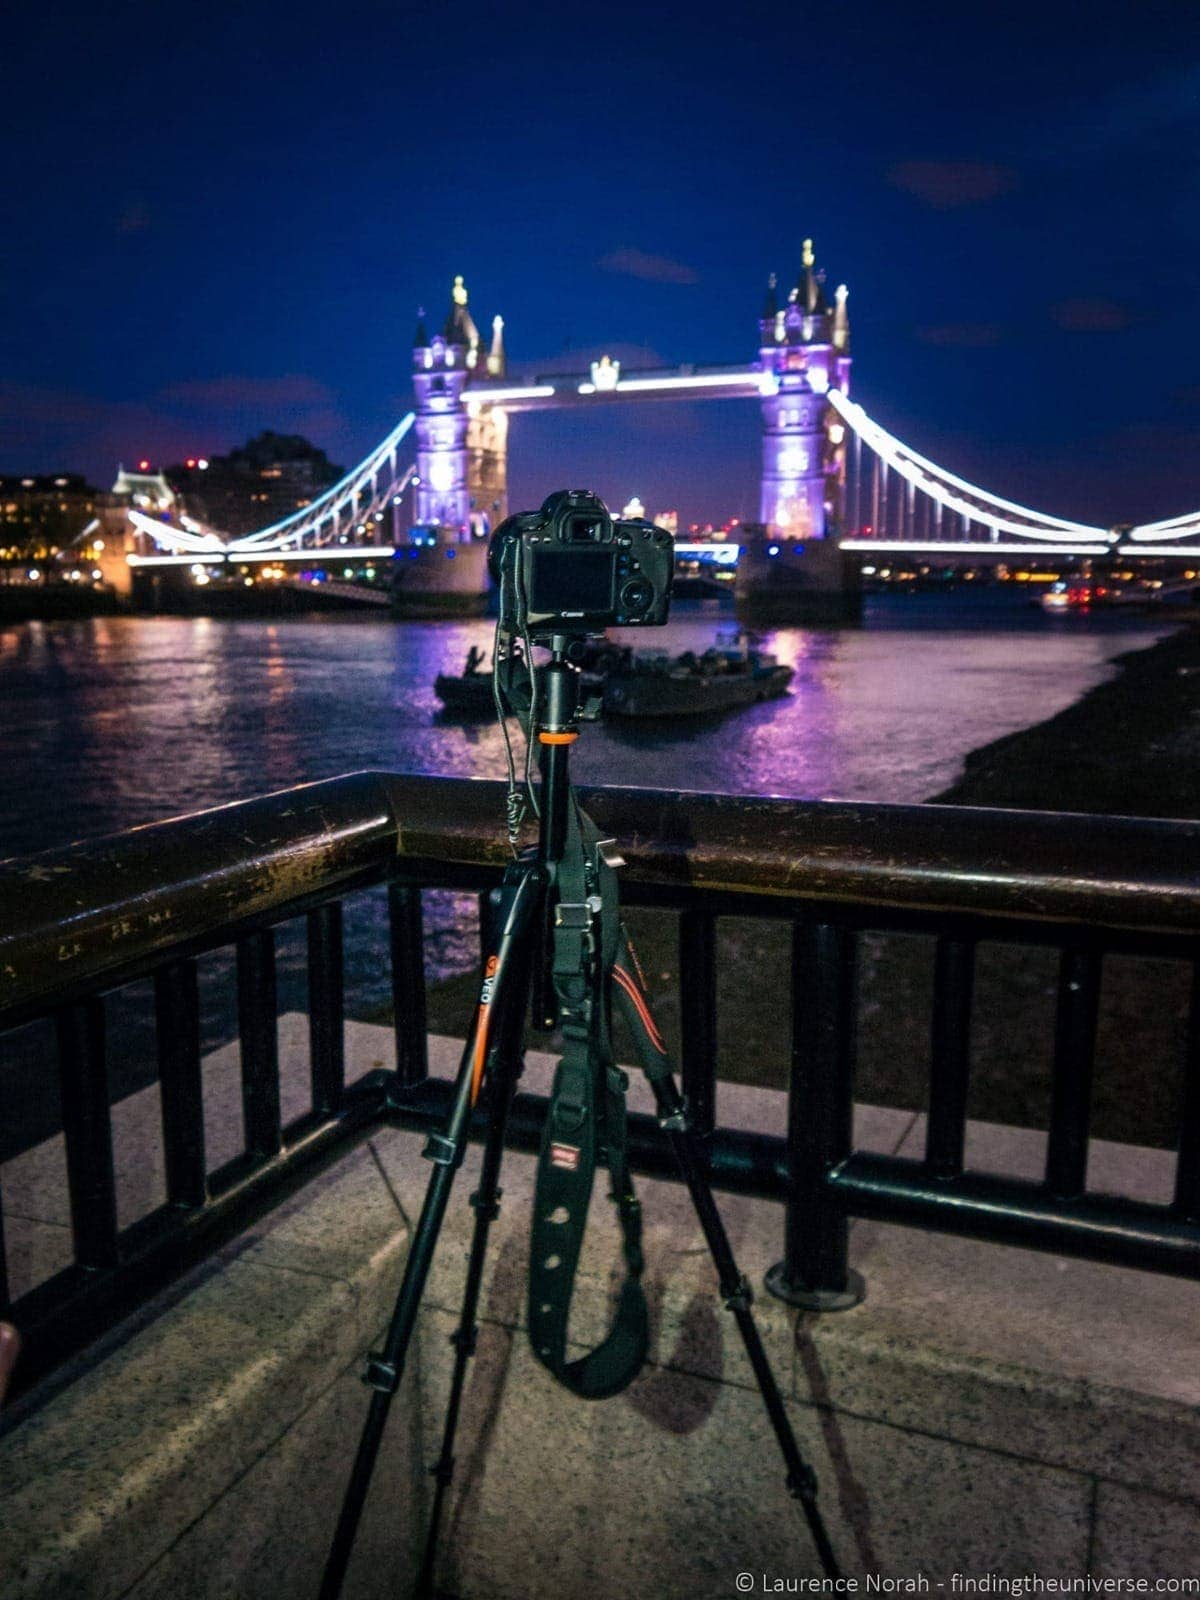 Vanguard tripod in front of tower bridge at night